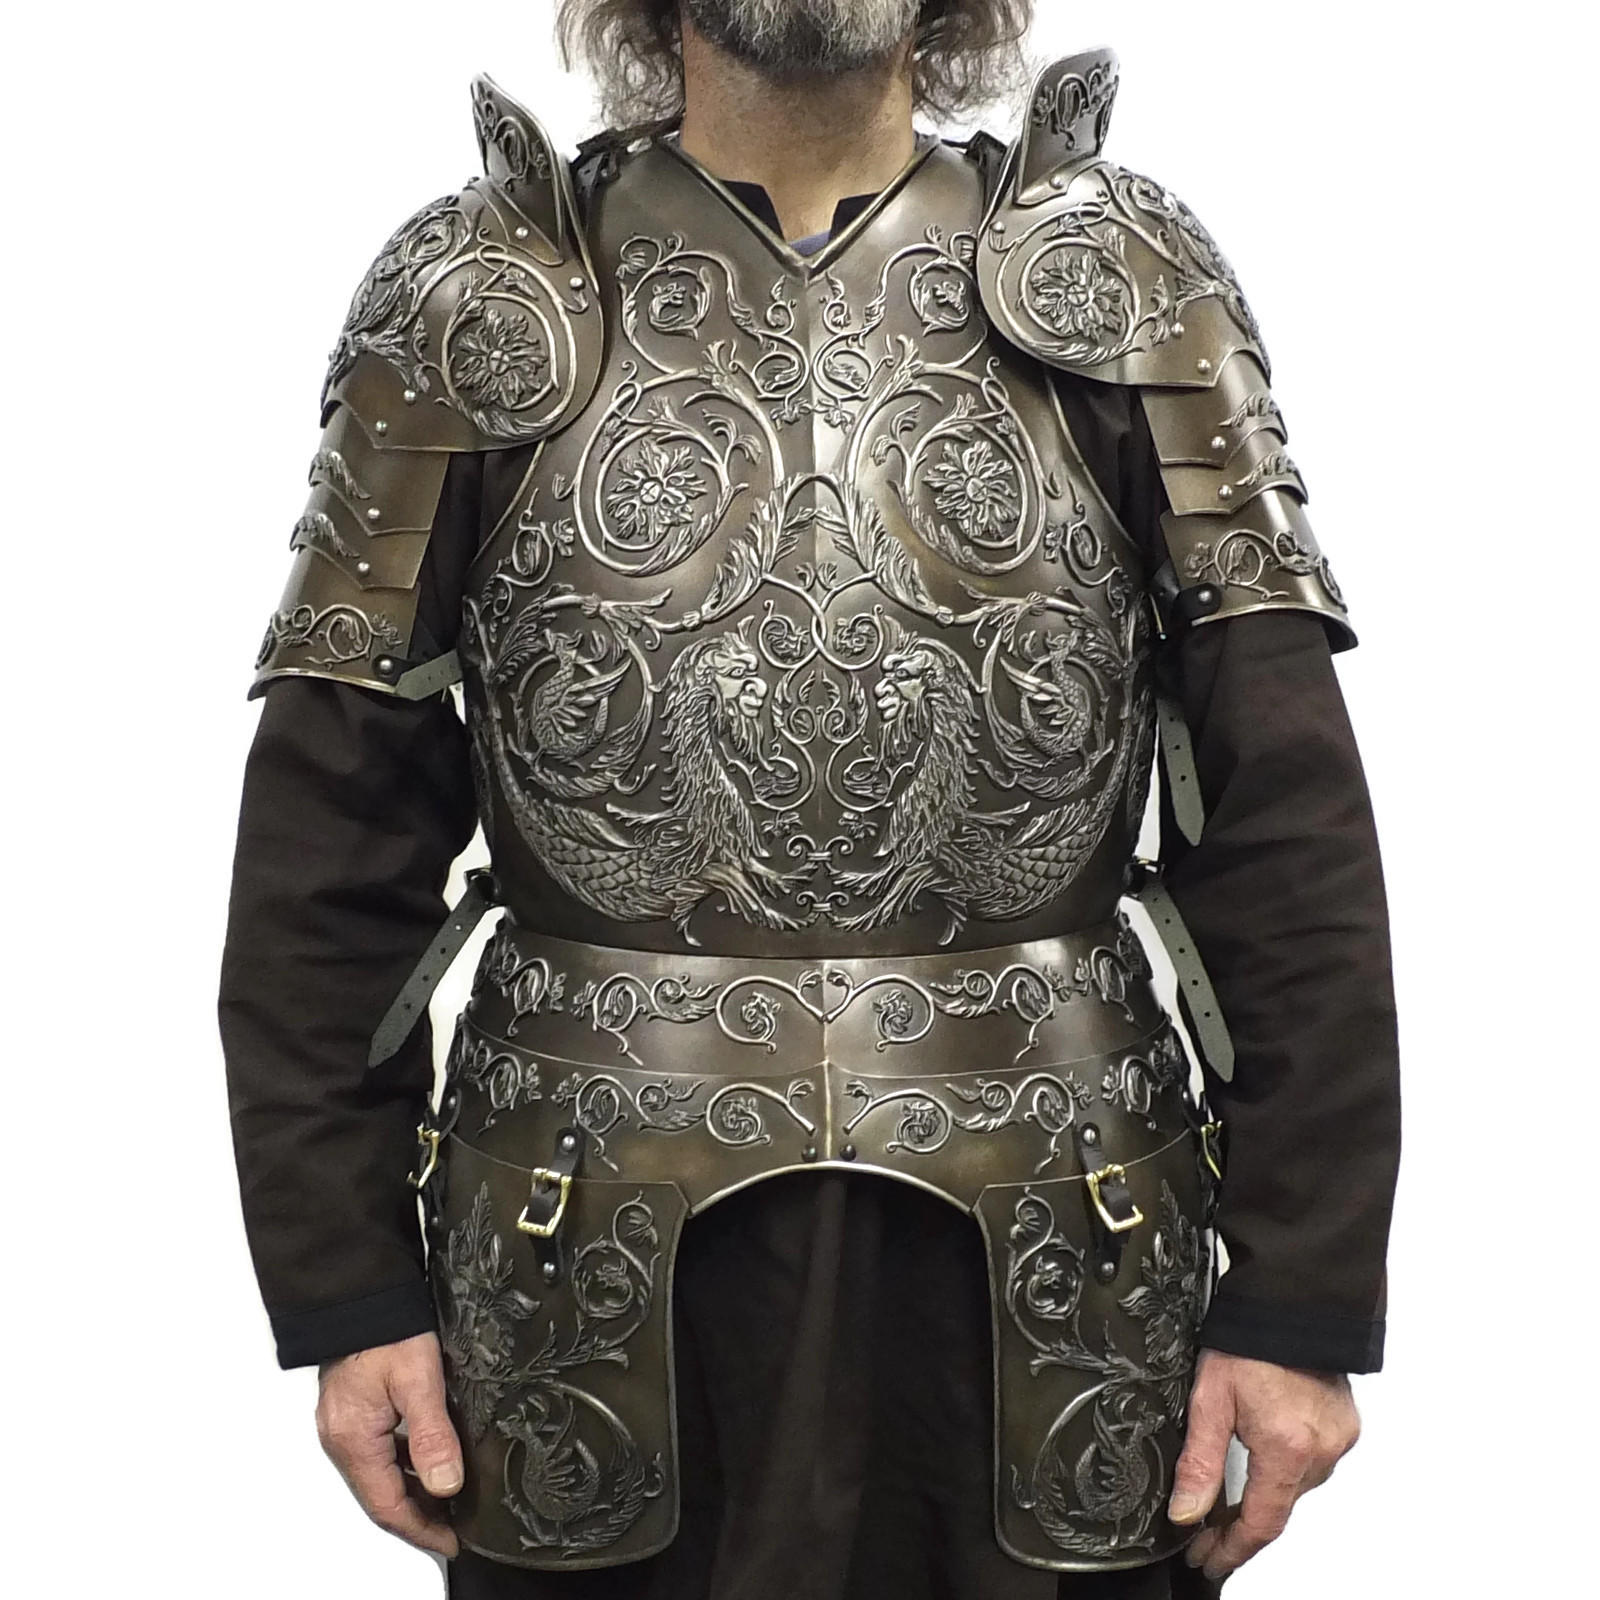 Negroli embossed larp armour set iron finish